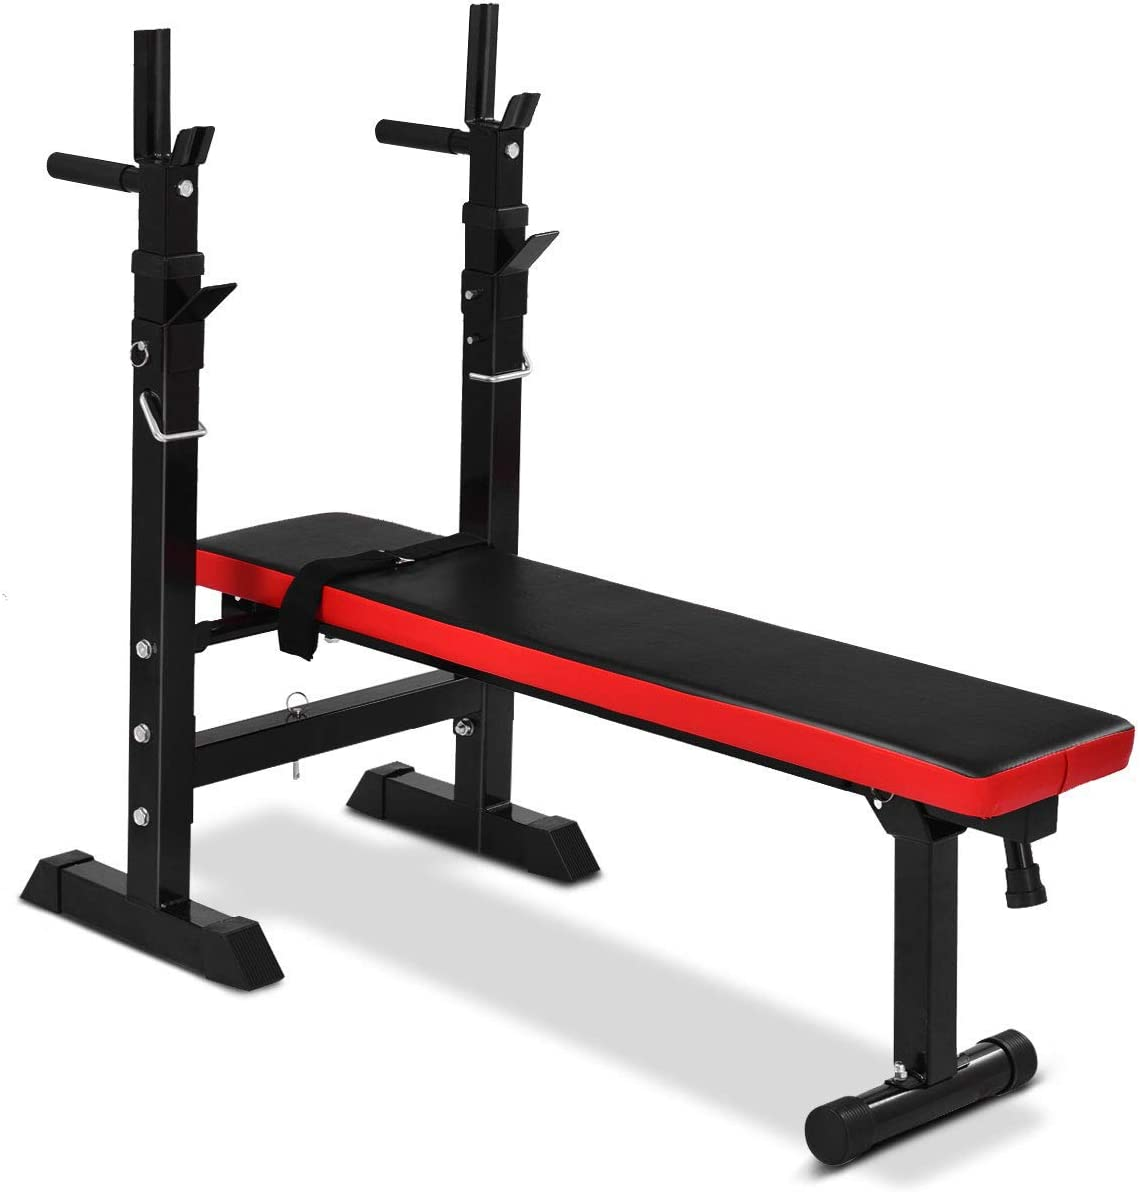 GYMAX Weight Bench Adjustable, Foldable Lifting Bench with Barbell Rack for Full Body Exercise, Multi-Function Workout Incline Bench for Commercial and Home Use, 440 Weight Capacity